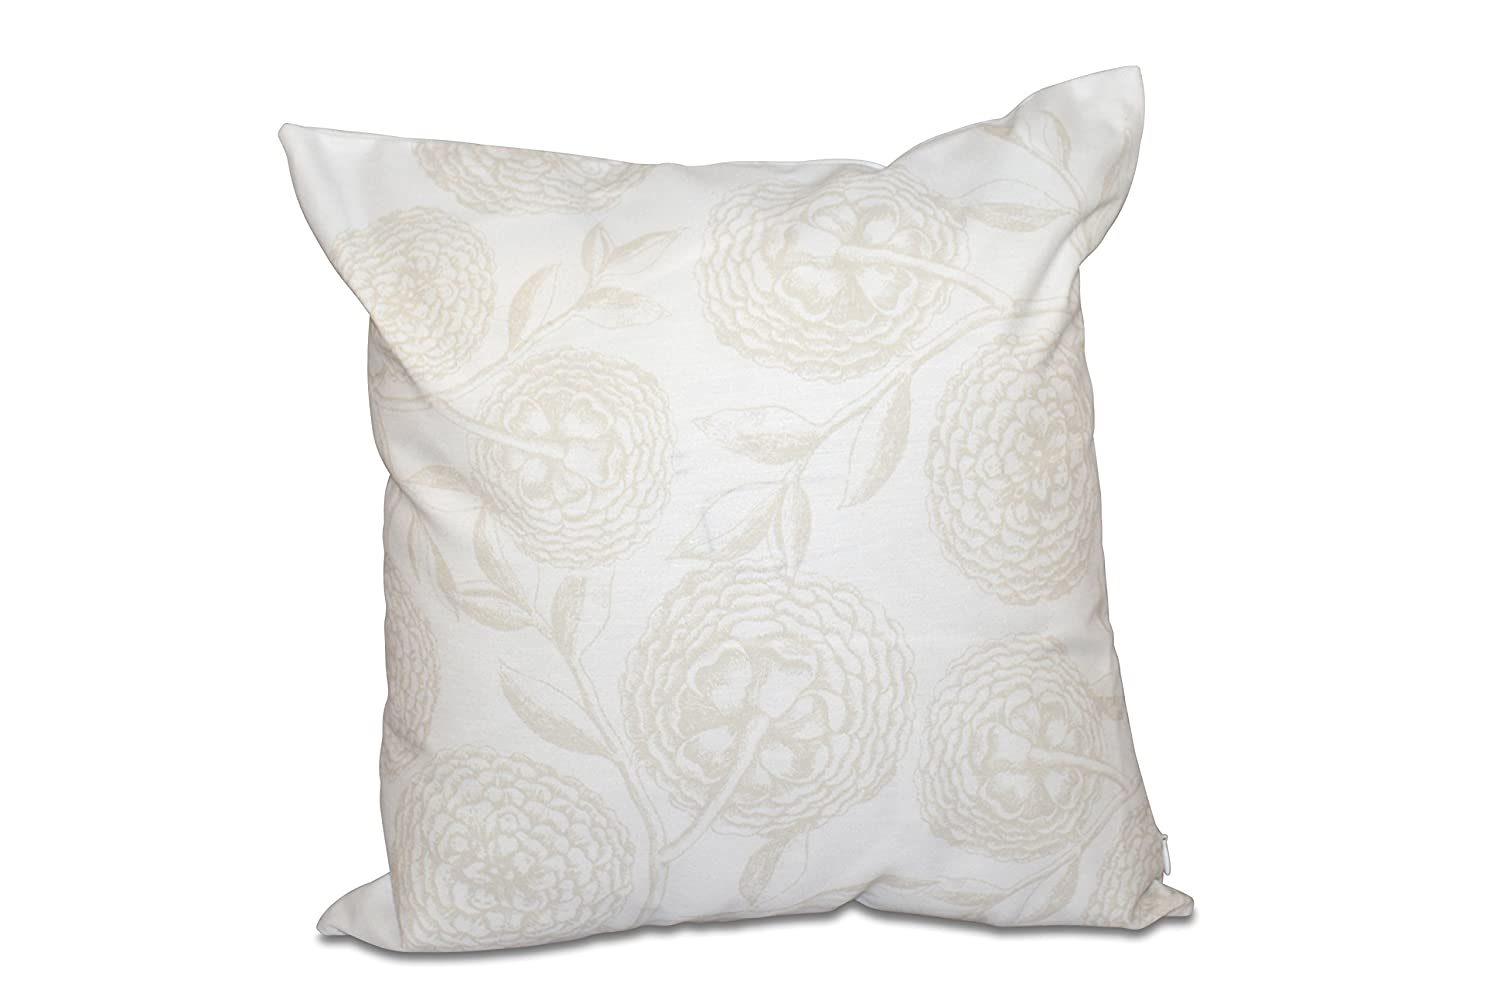 E by design PFN493WH1IV2-16 16 x 16-inch, Antique Flowers, Floral Print Pillow 16x16 White